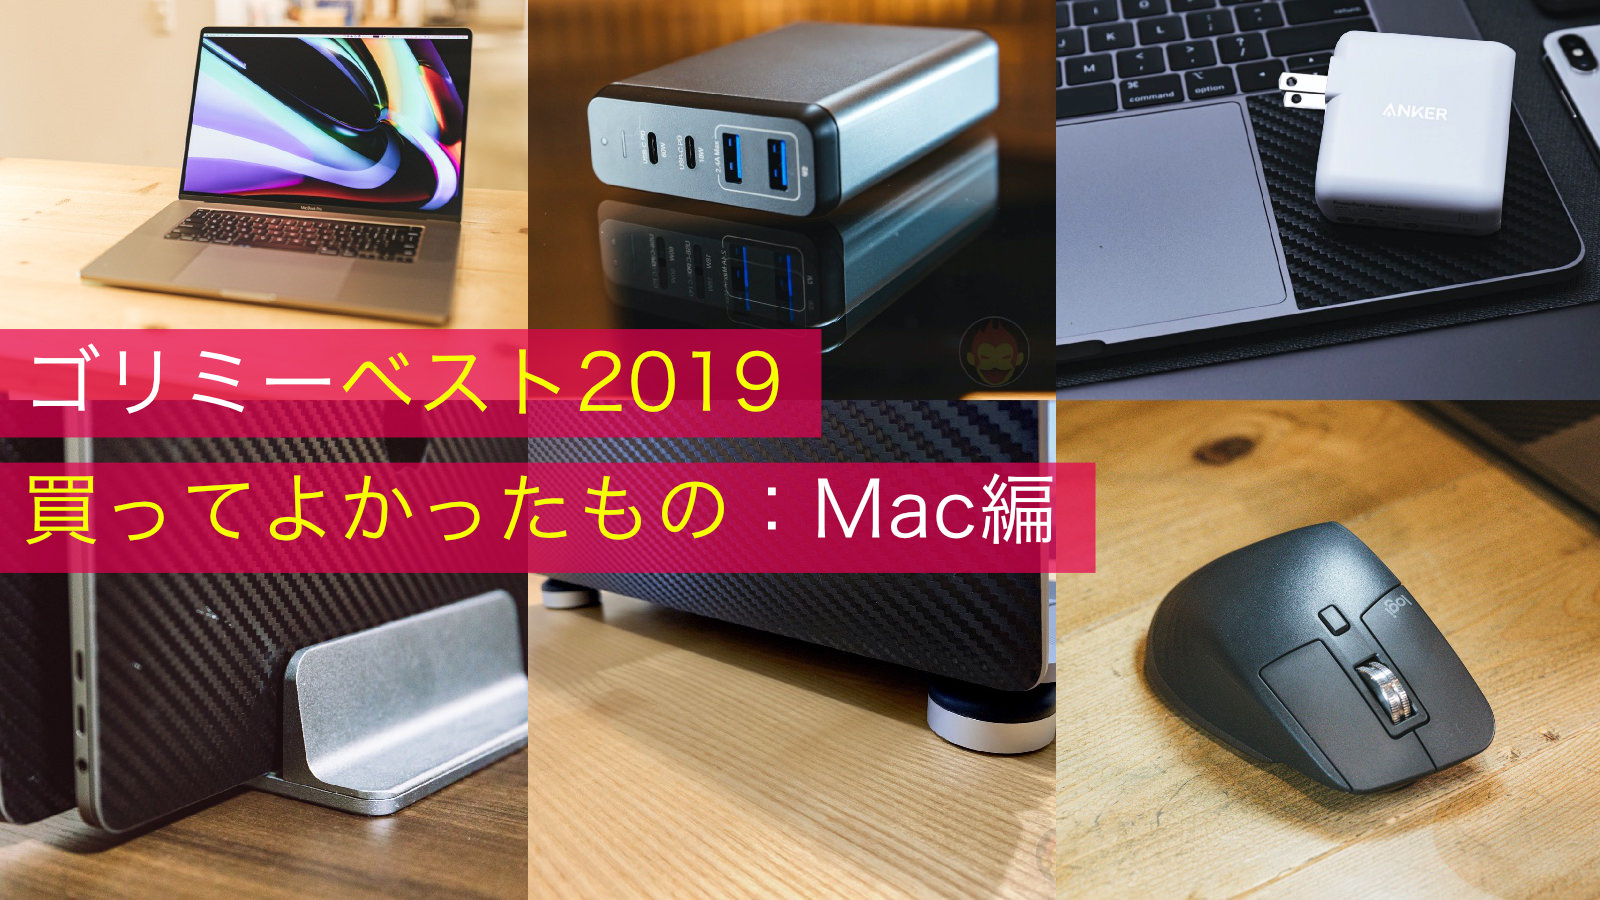 Best-Buy-2019-Mac.jpg